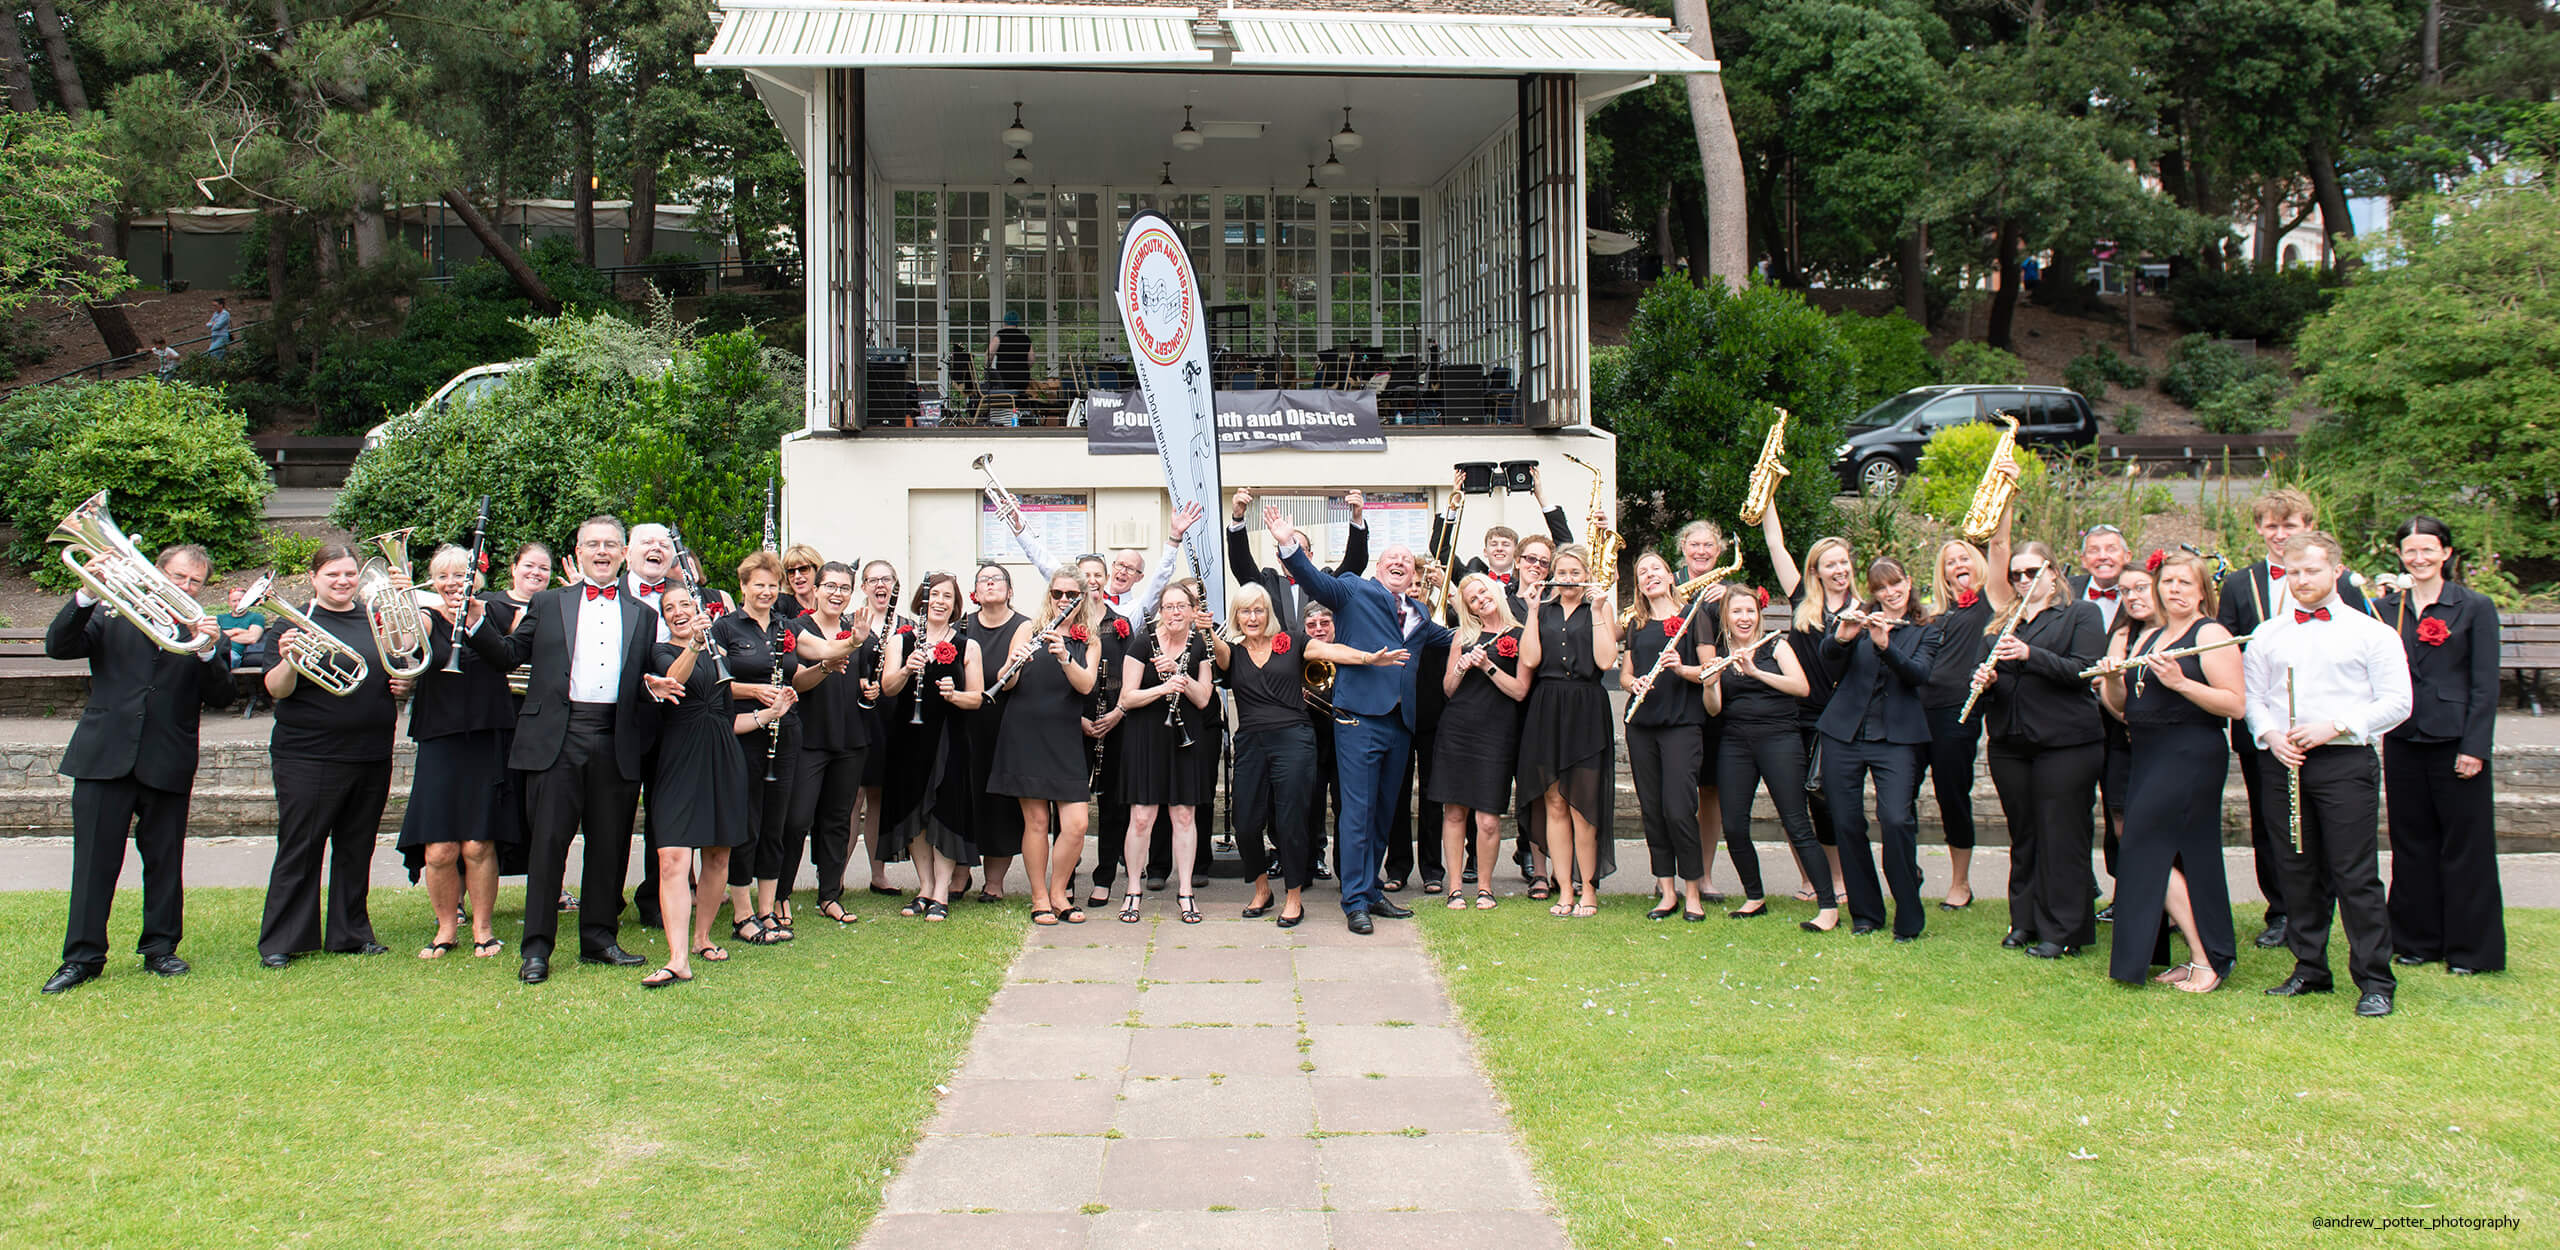 Bournemouth and District Concert Band